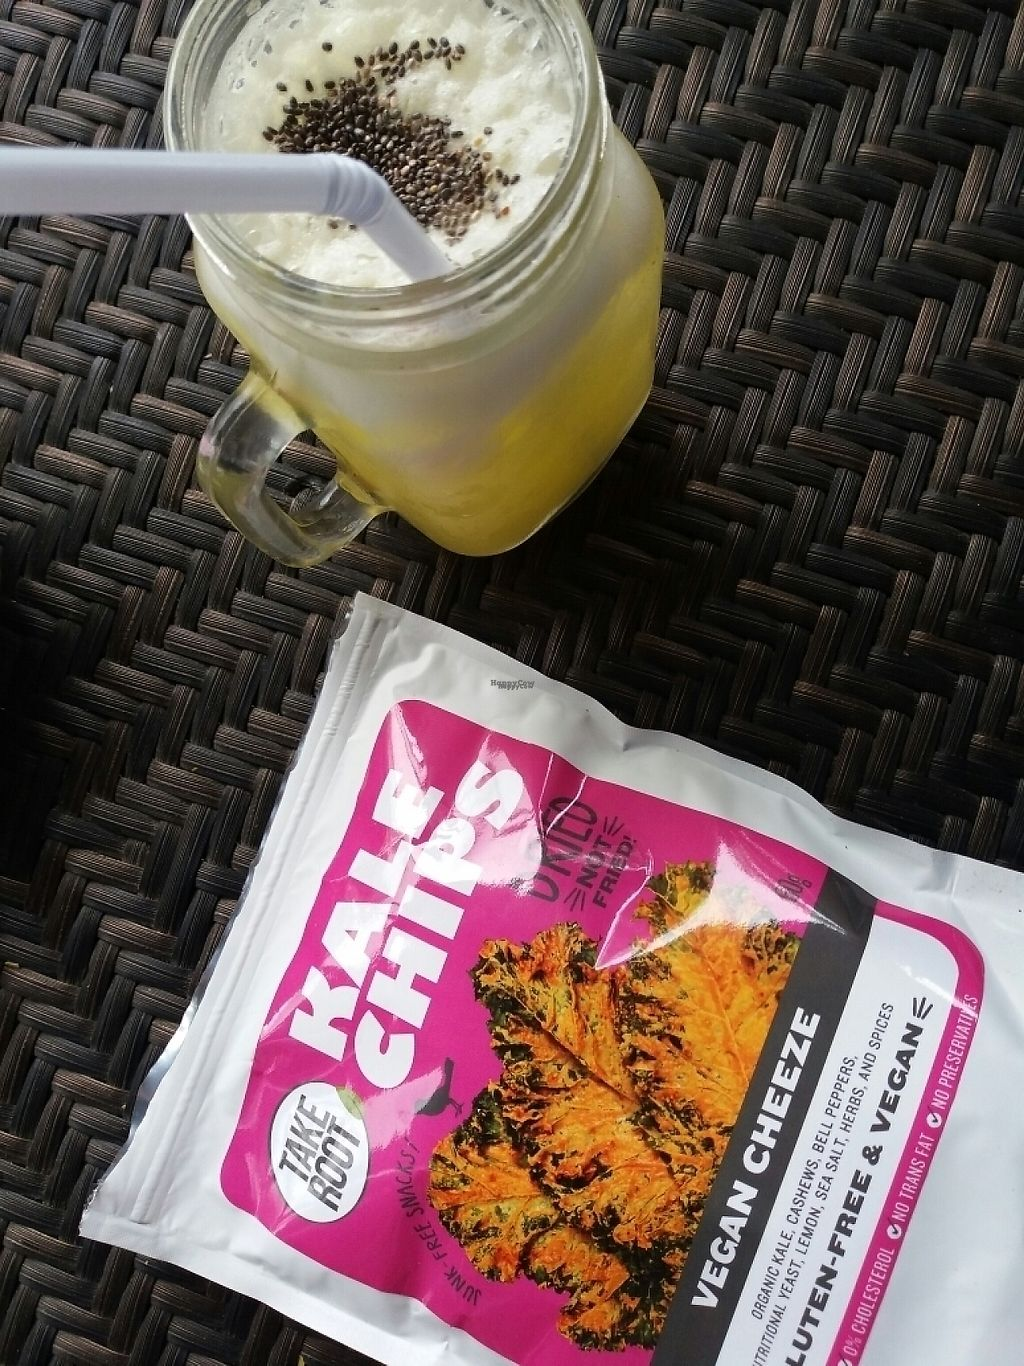 """Photo of Live All Day  by <a href=""""/members/profile/coco_papillon"""">coco_papillon</a> <br/>kale chips and pineapple smoothie <br/> April 4, 2017  - <a href='/contact/abuse/image/89745/244577'>Report</a>"""